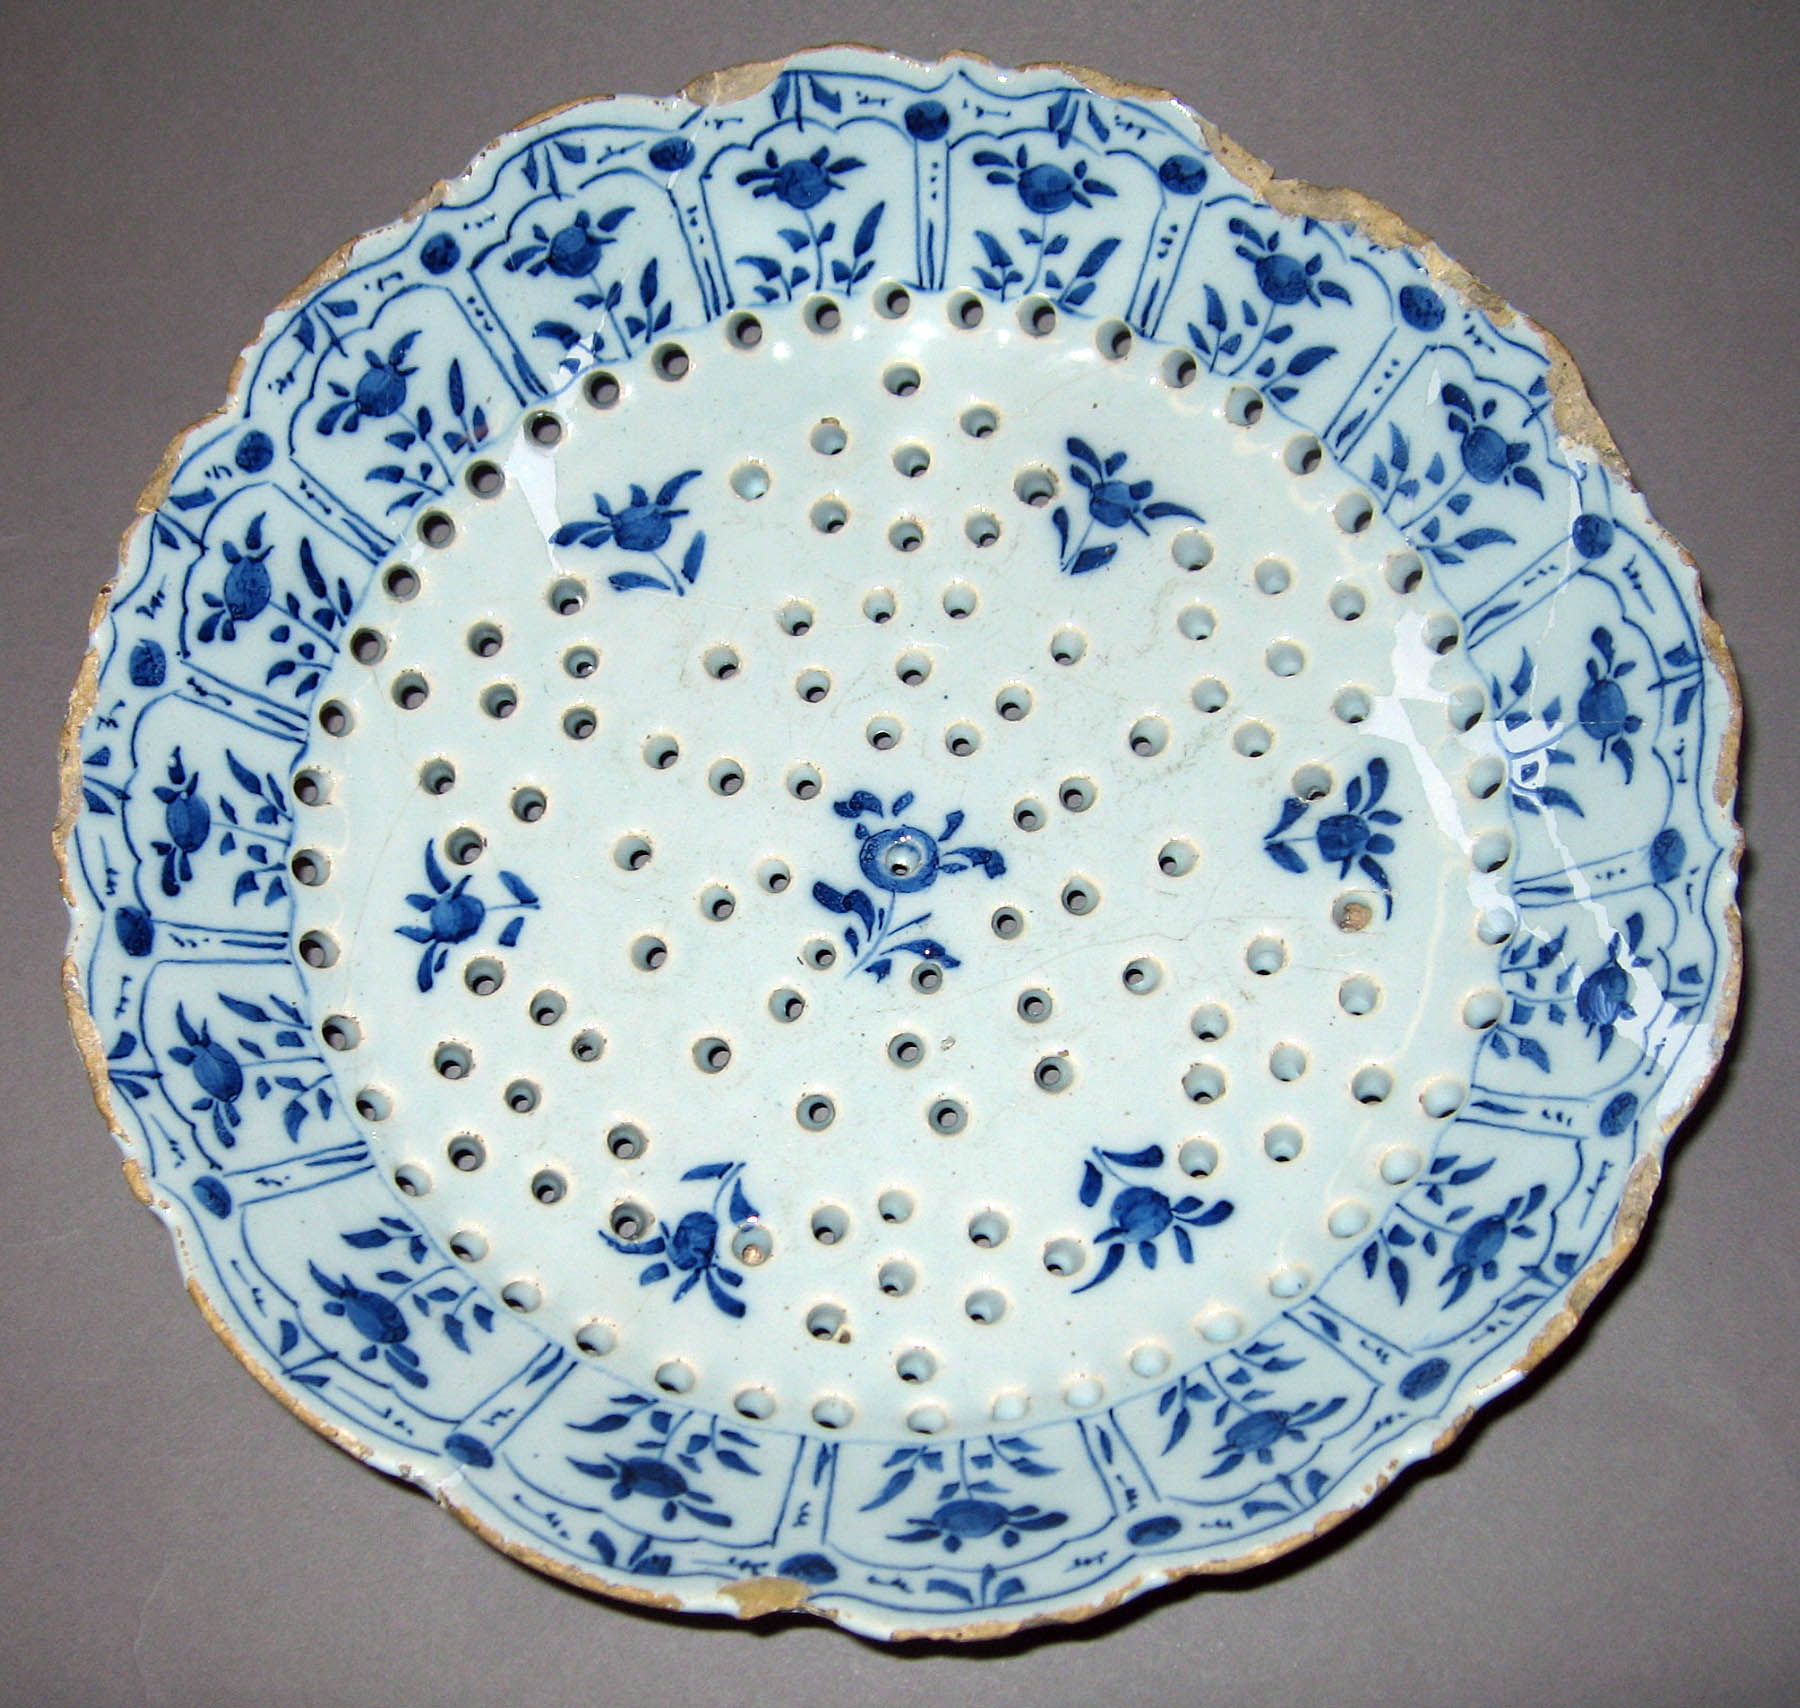 1979.0046 Dutch earthenware strainer